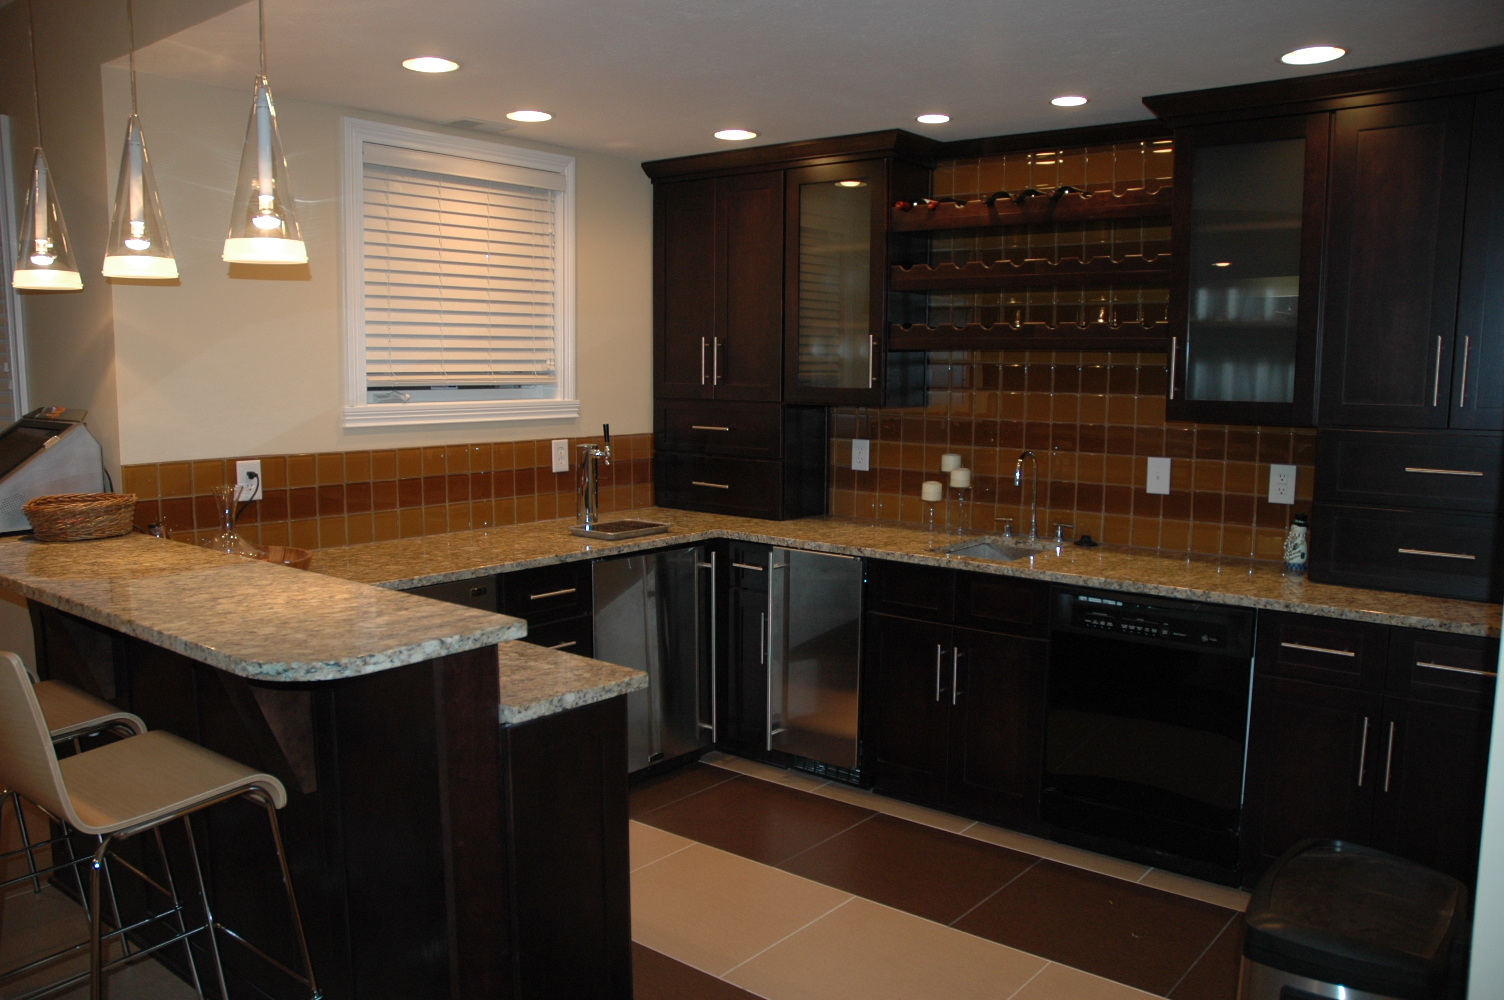 Attrayant Home, Kitchen U0026 Bath Remodeling Indianapolis U2013 The Lifestyle Group